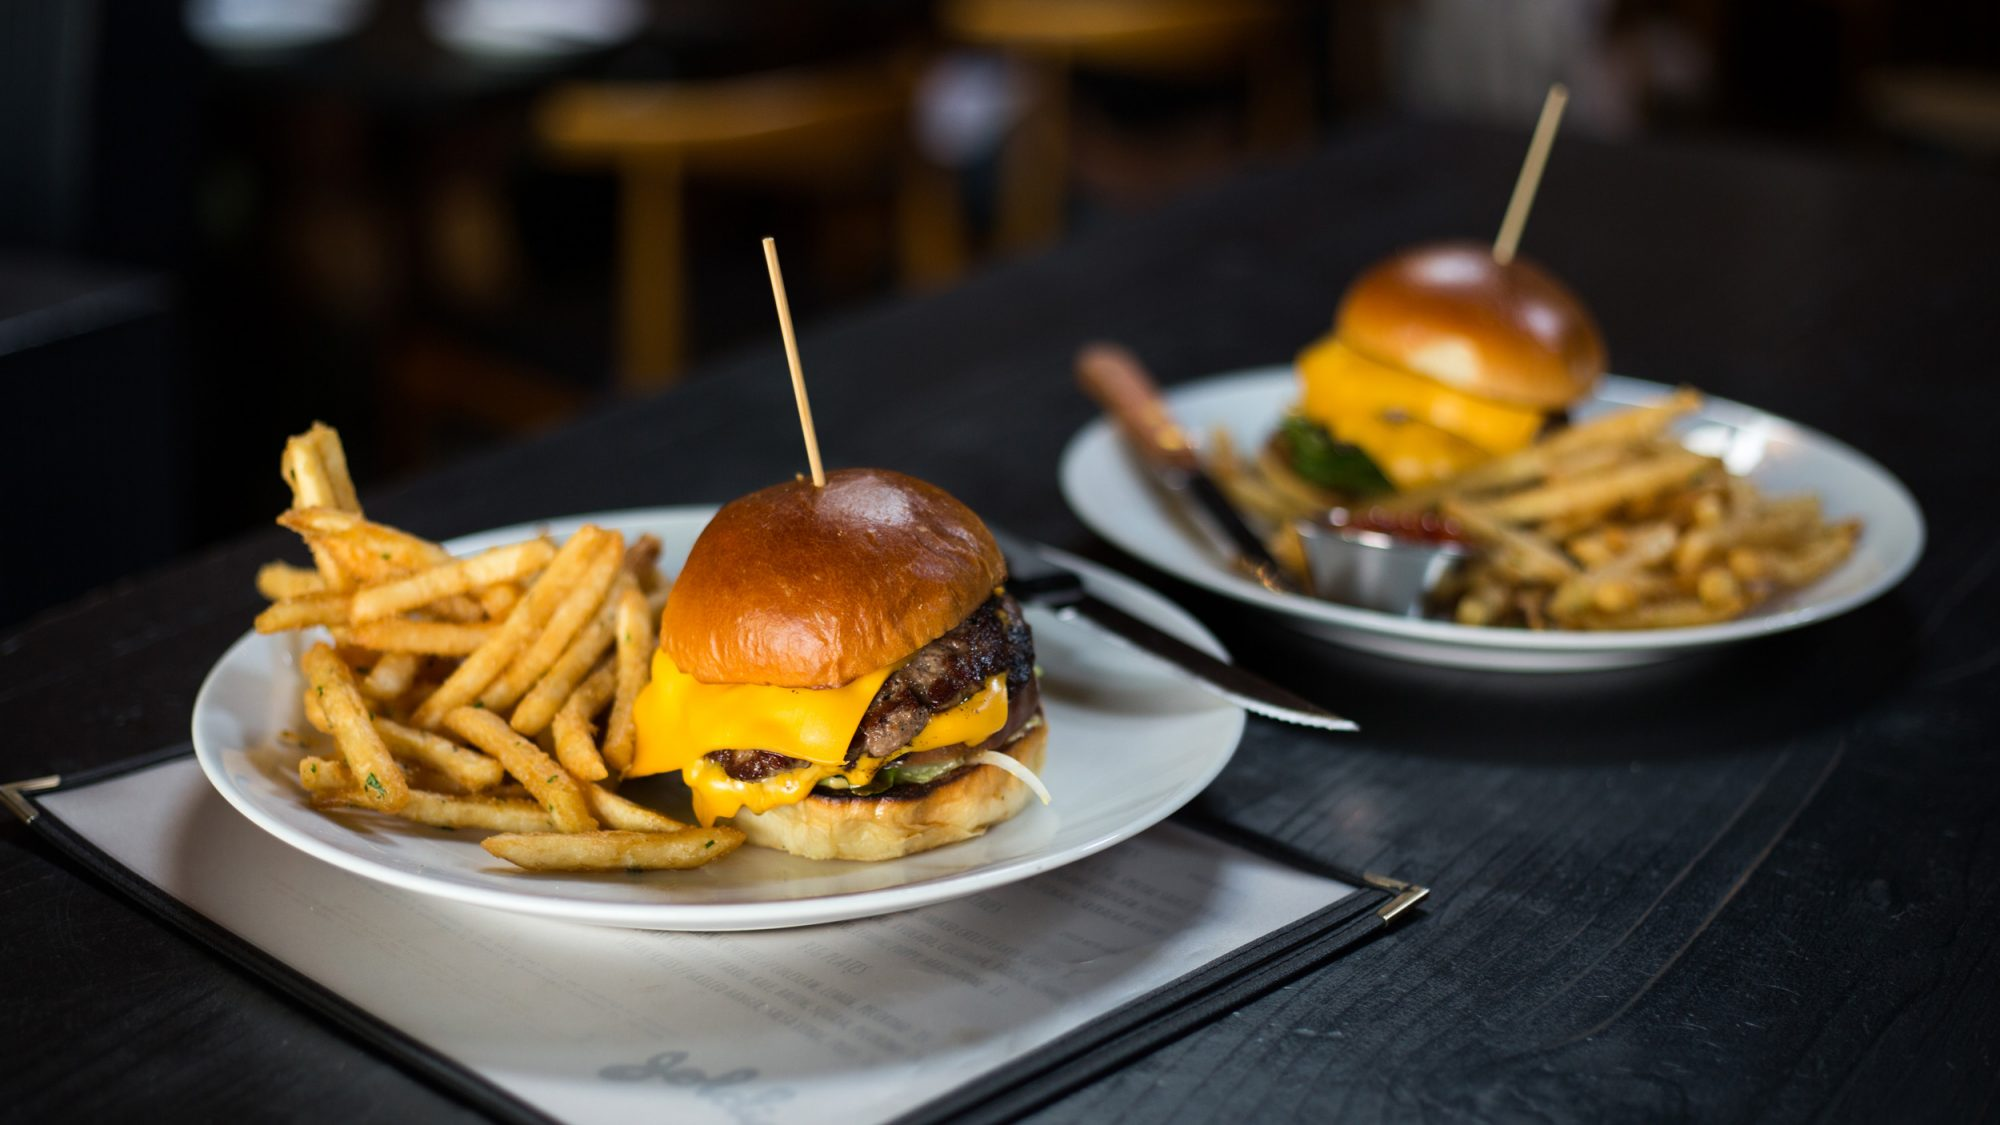 Cleansing Juices and Juicy Burgers: Kris Yenbamroong's Guide to Los Angeles